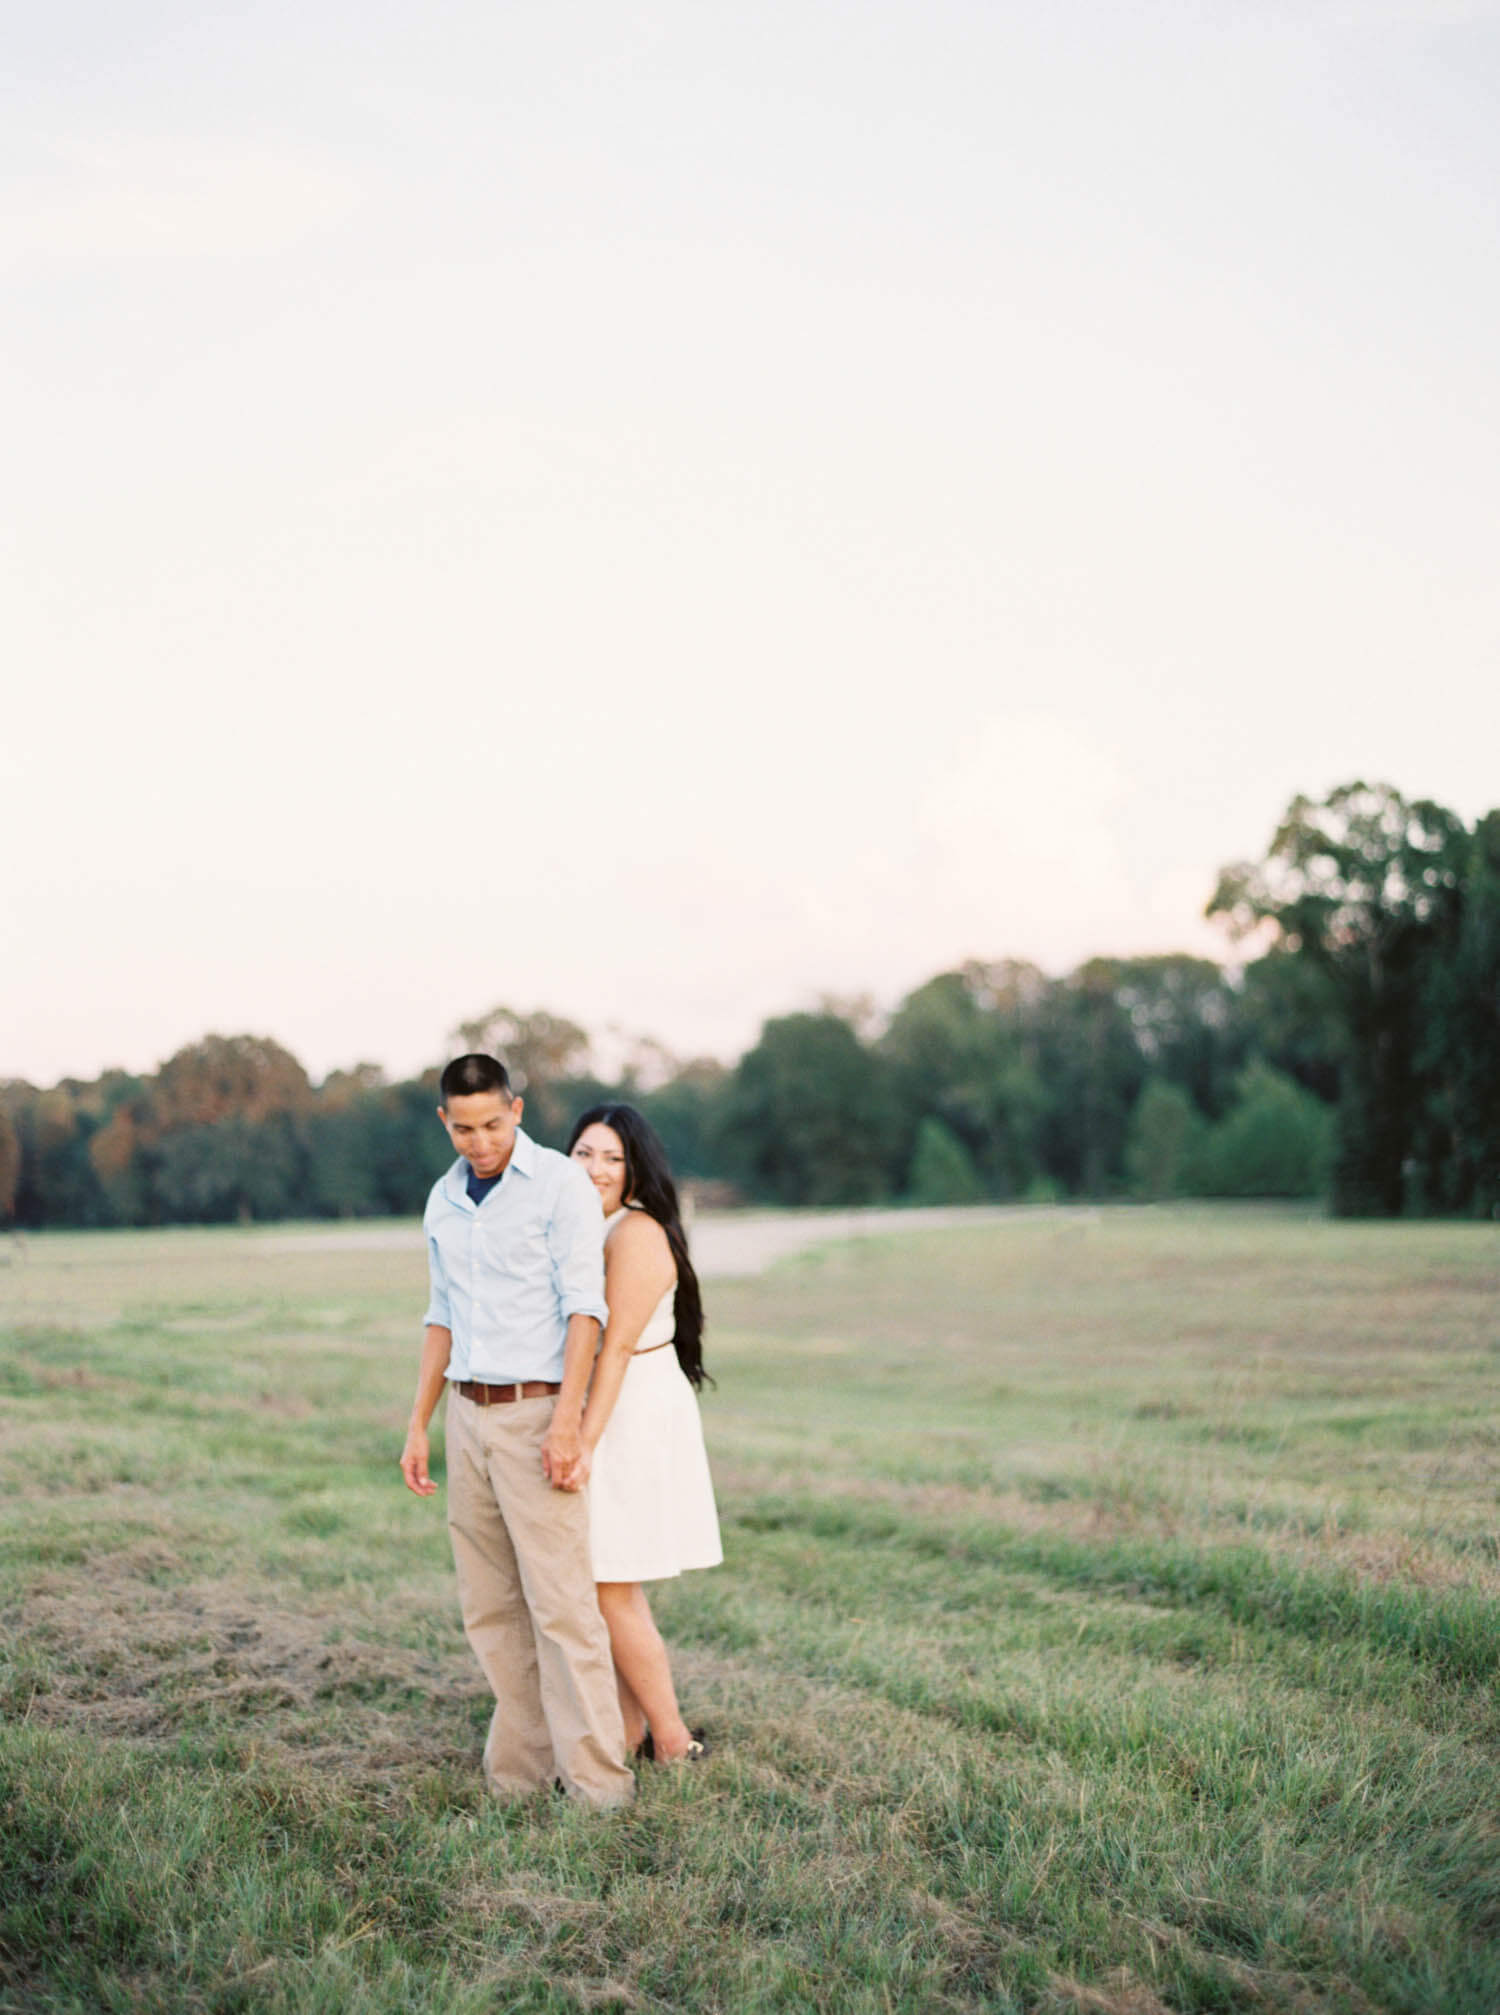 coushatta engagement wedding buffalo